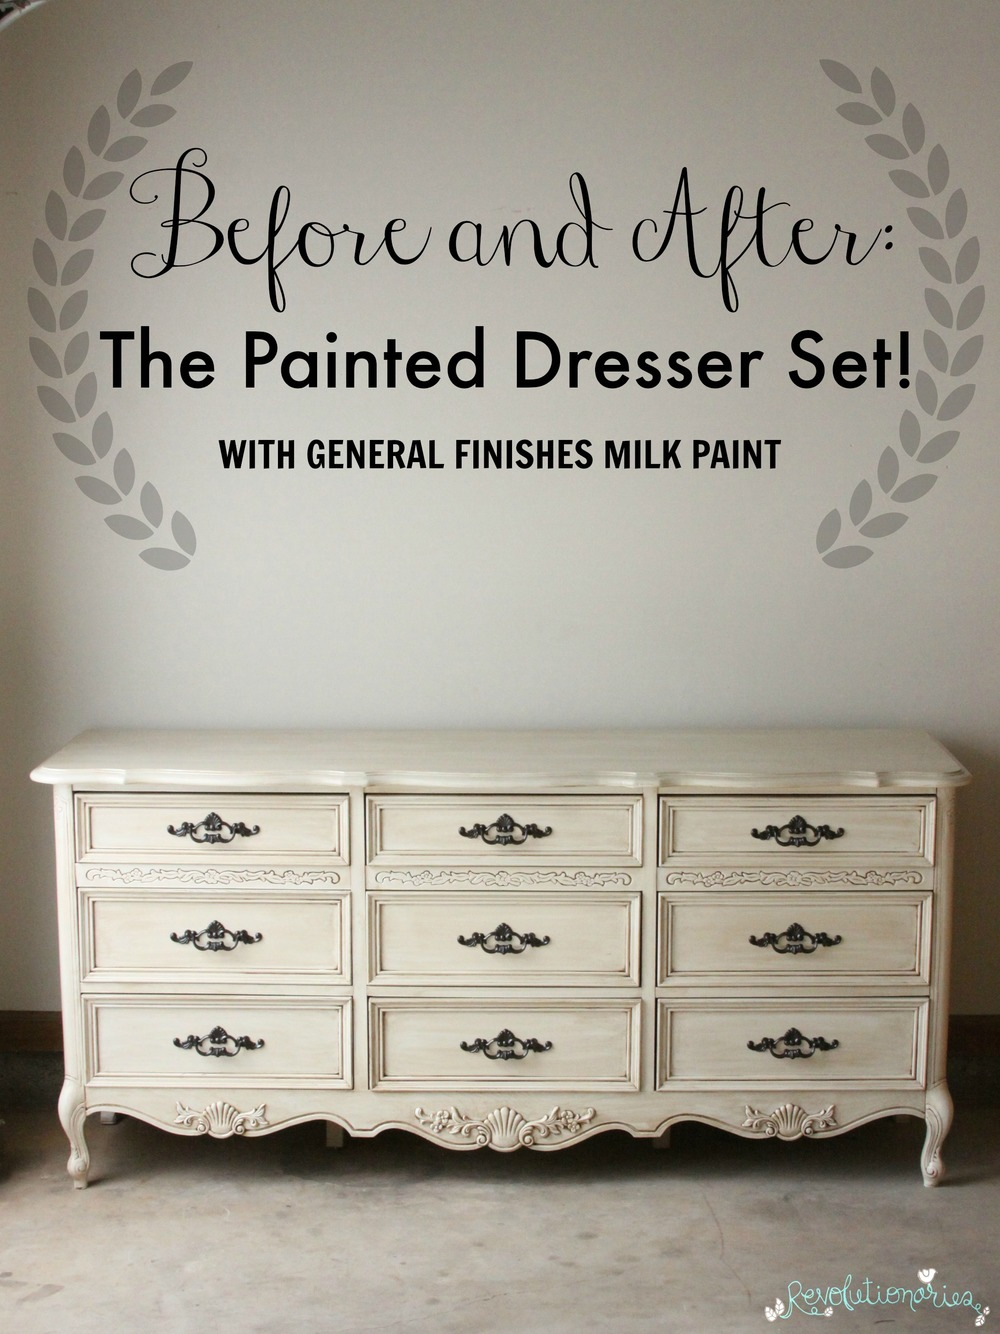 before-and-after-painted-dresser-set-8.jpg